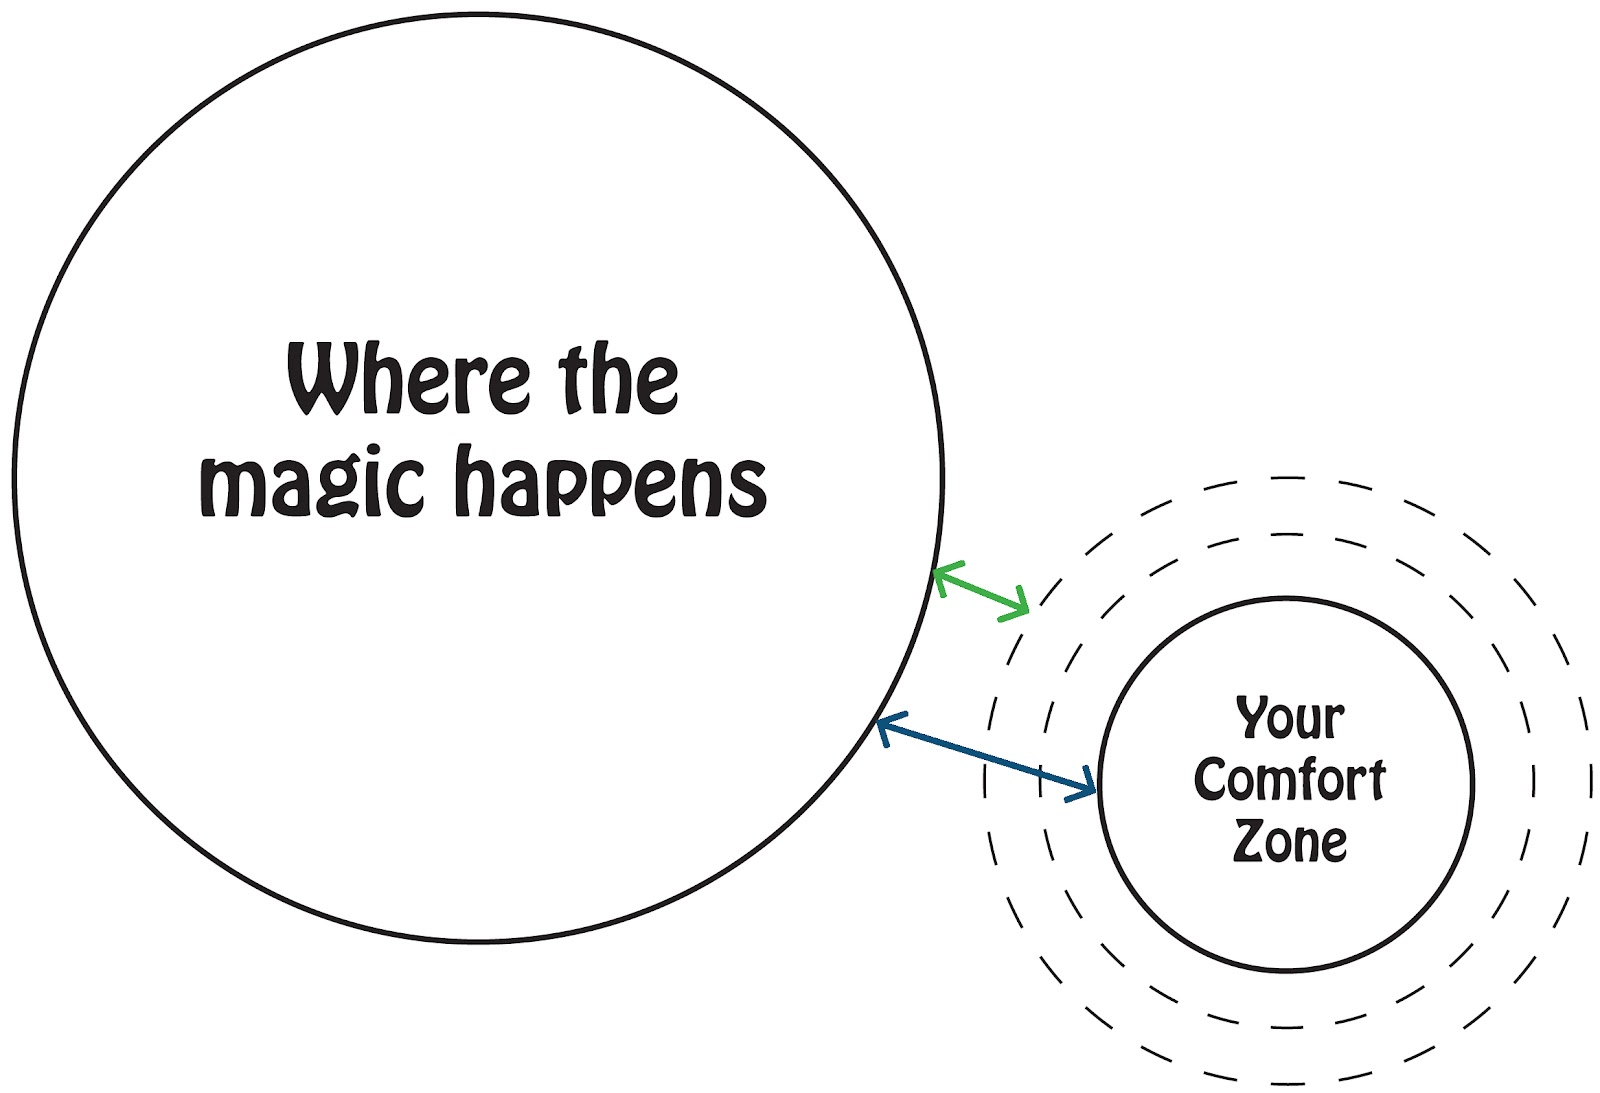 Runner S High Comfort Zone And Why I Need To Extend It